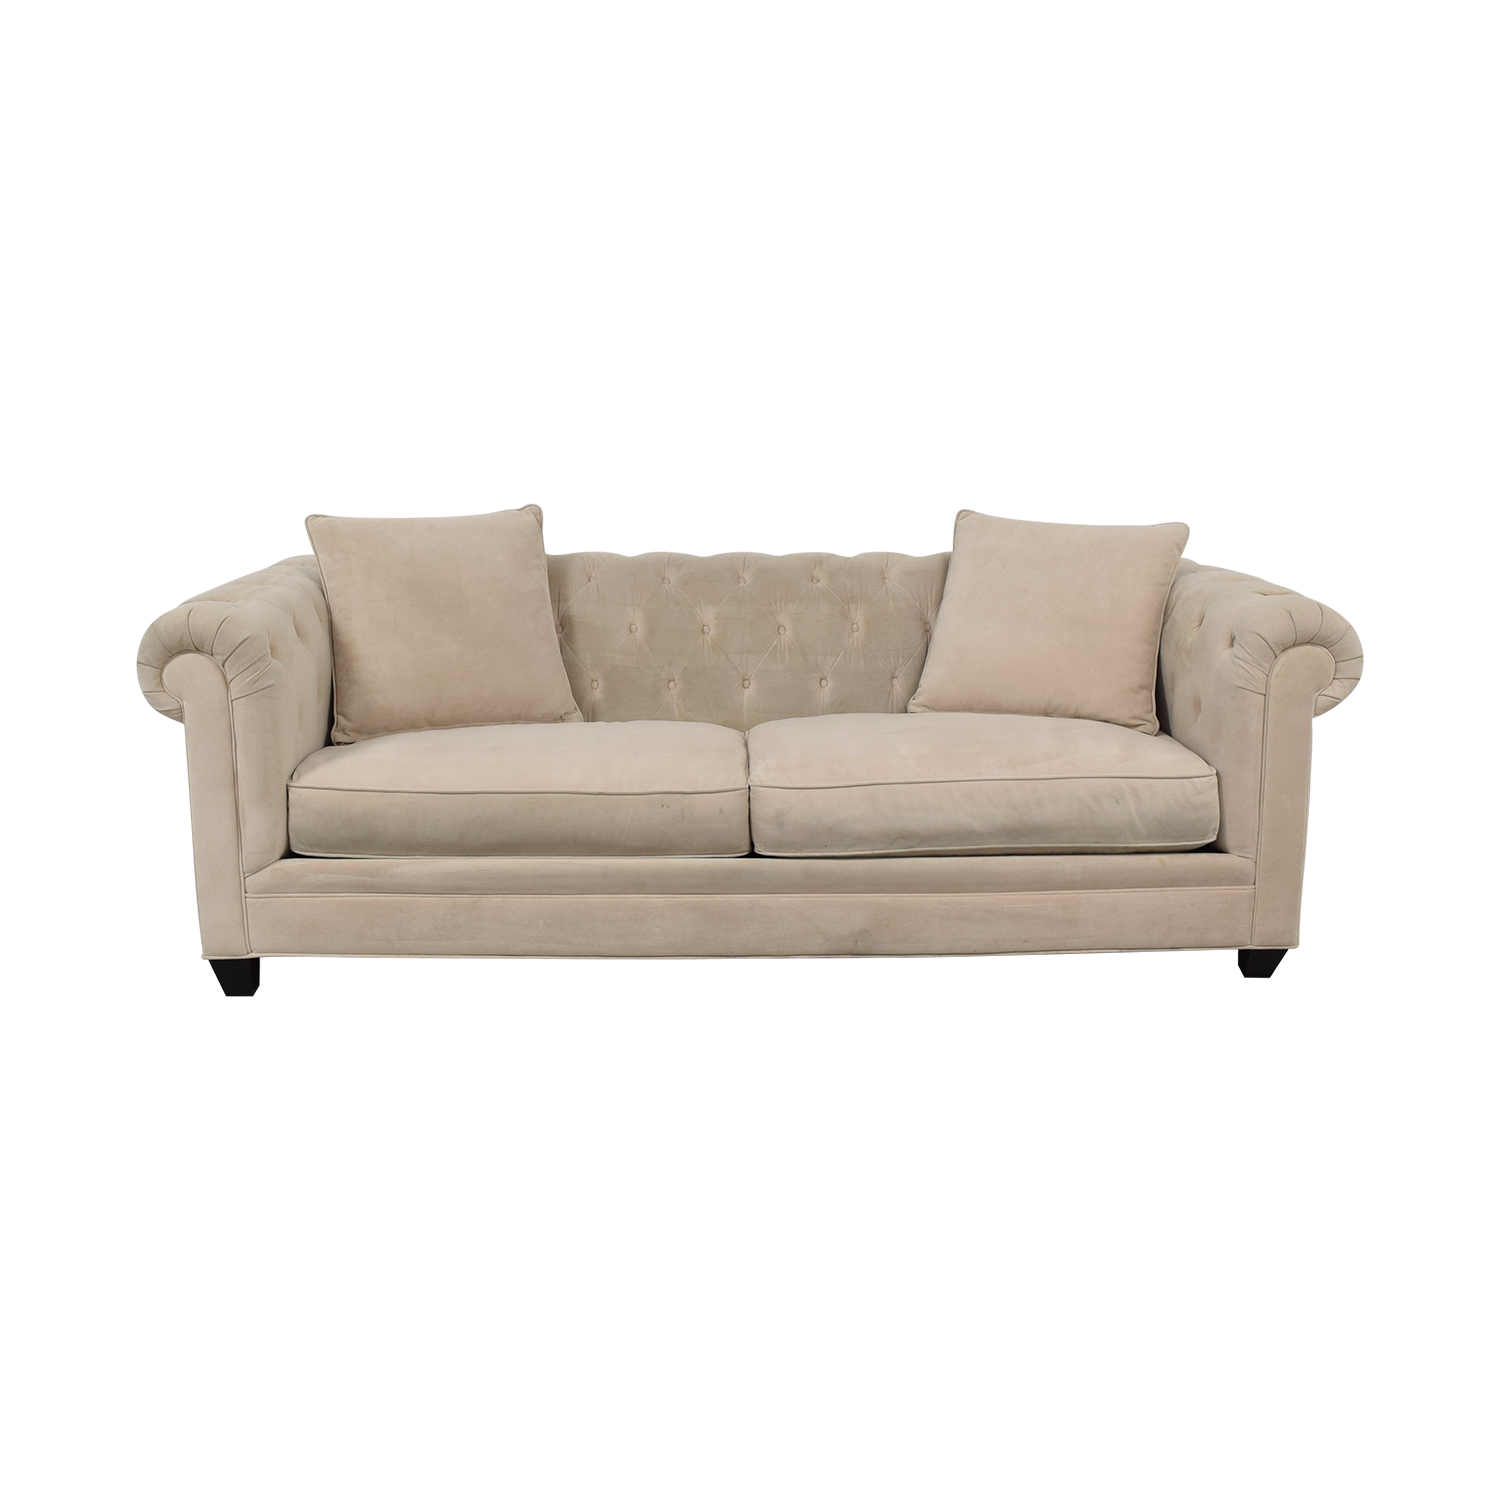 shop Jonathan Louis Saybridge Beige Tufted Two-Cushion Sofa Jonathan Louis Sofas